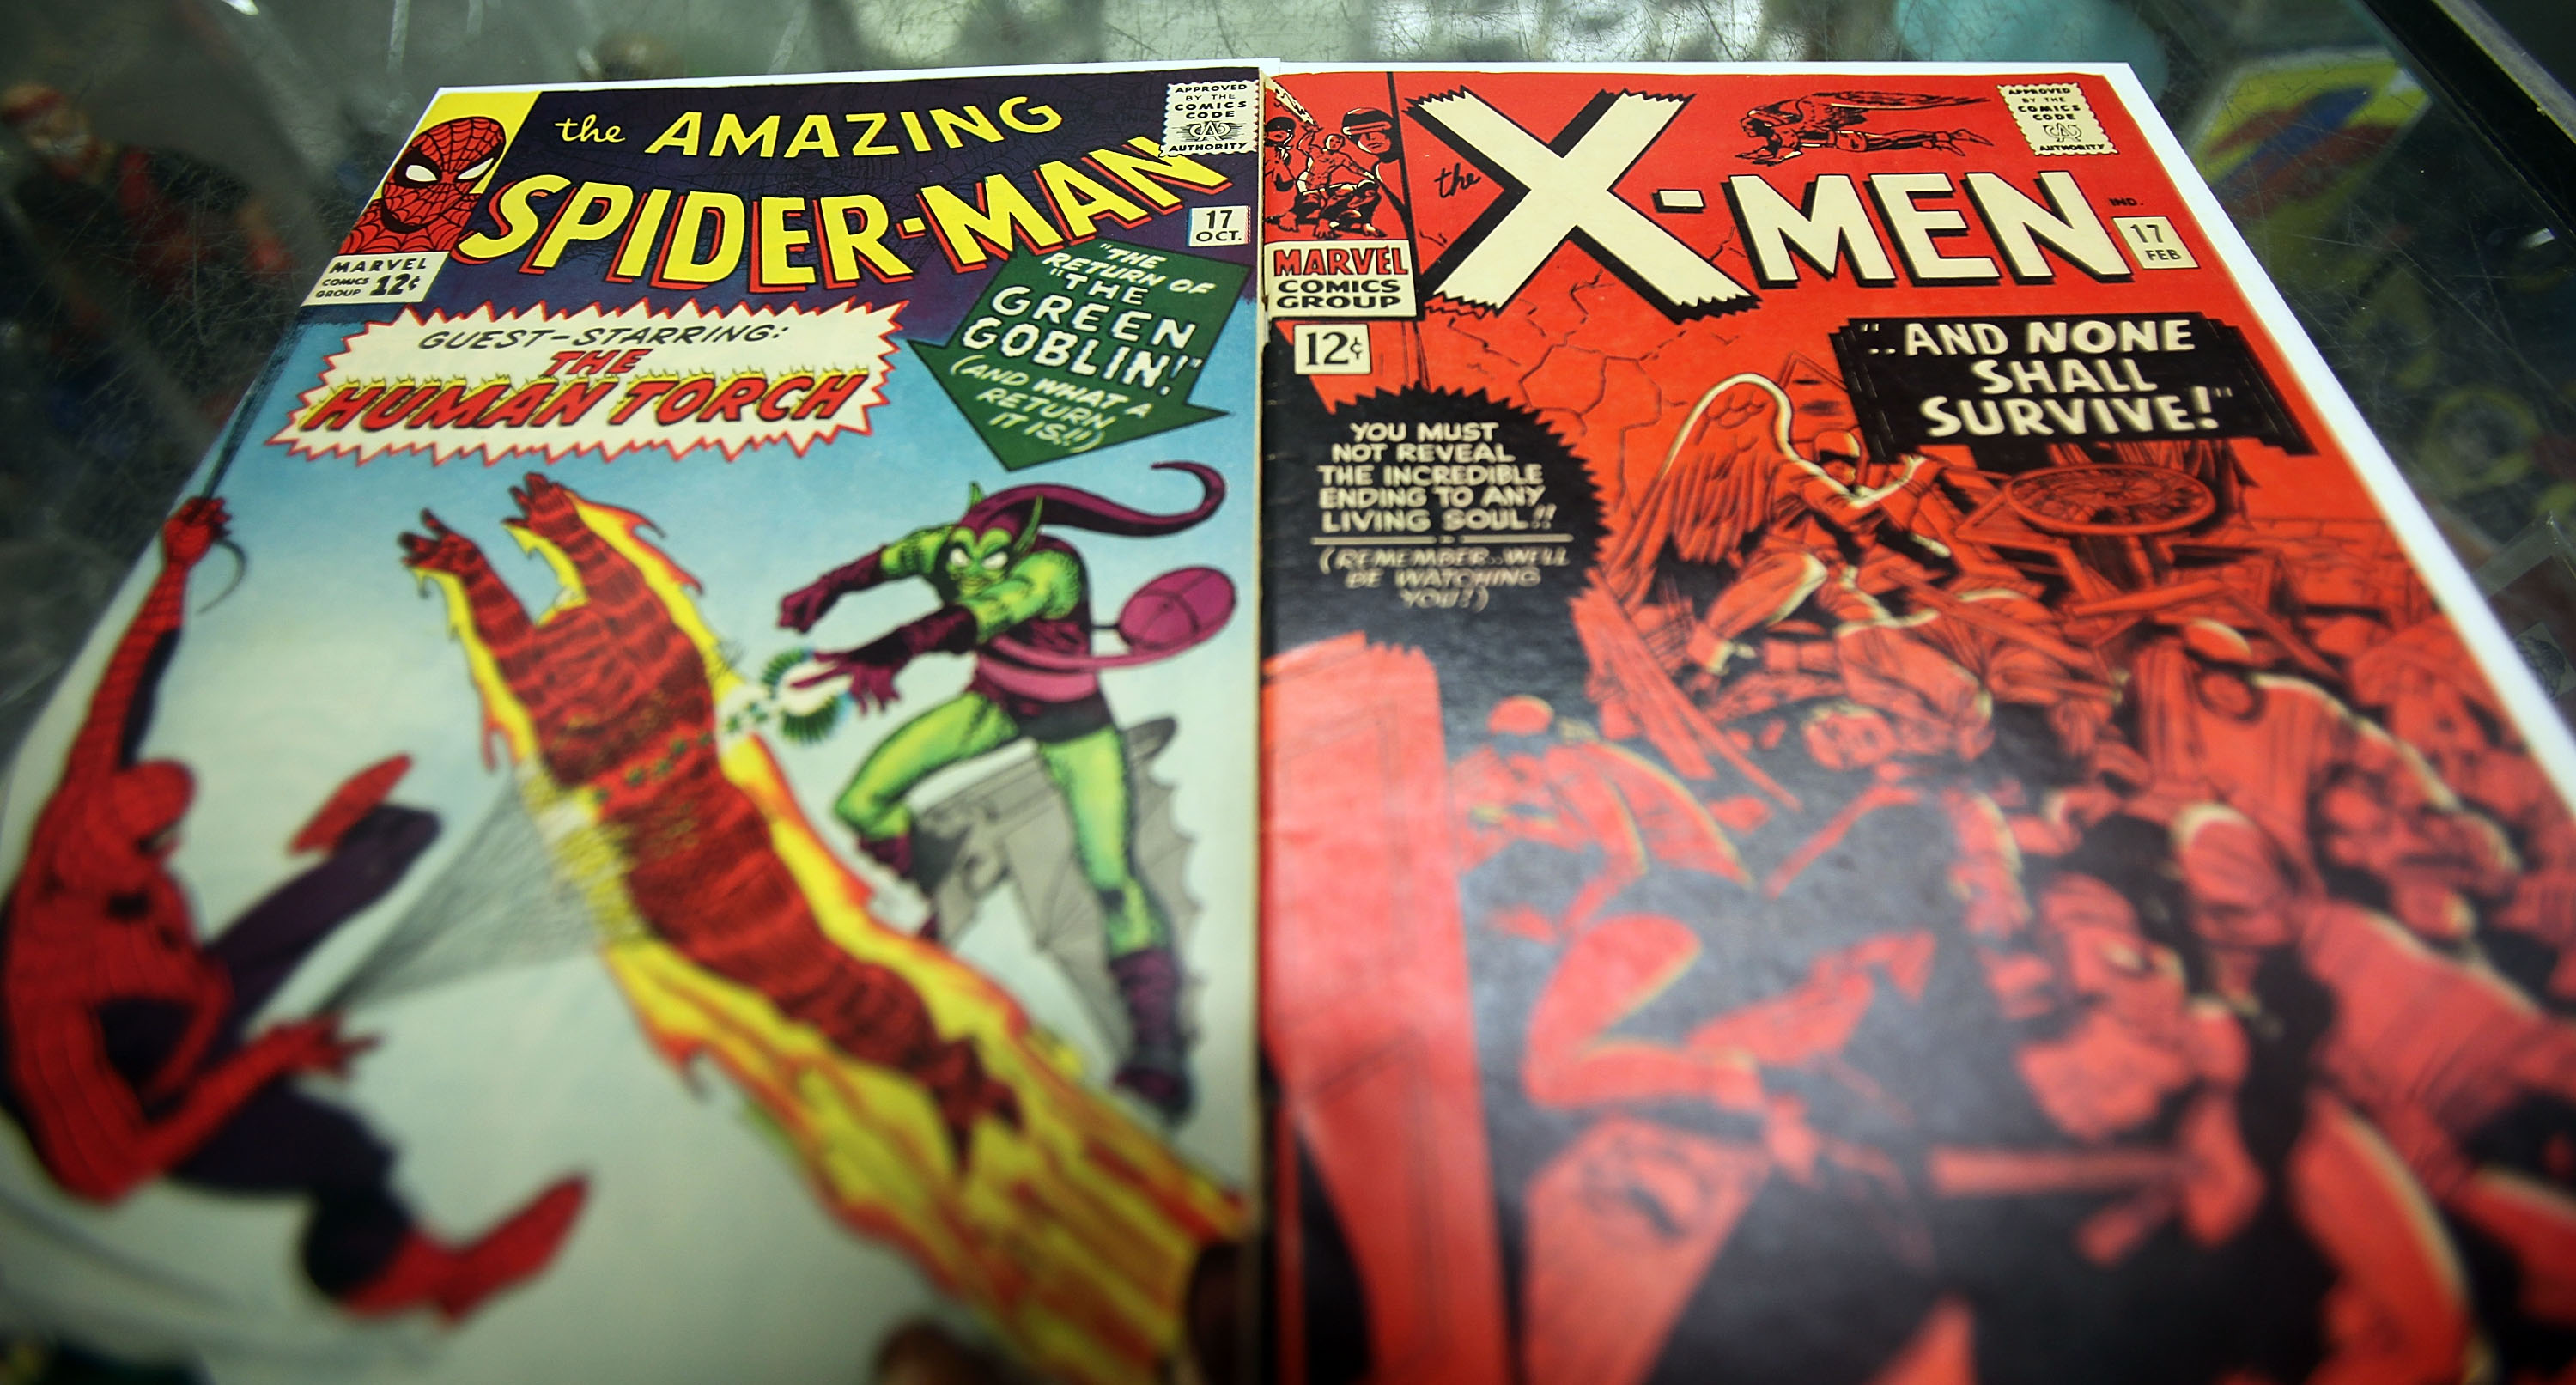 First-Ever Marvel Comic Sells at Auction for $1.26 Million